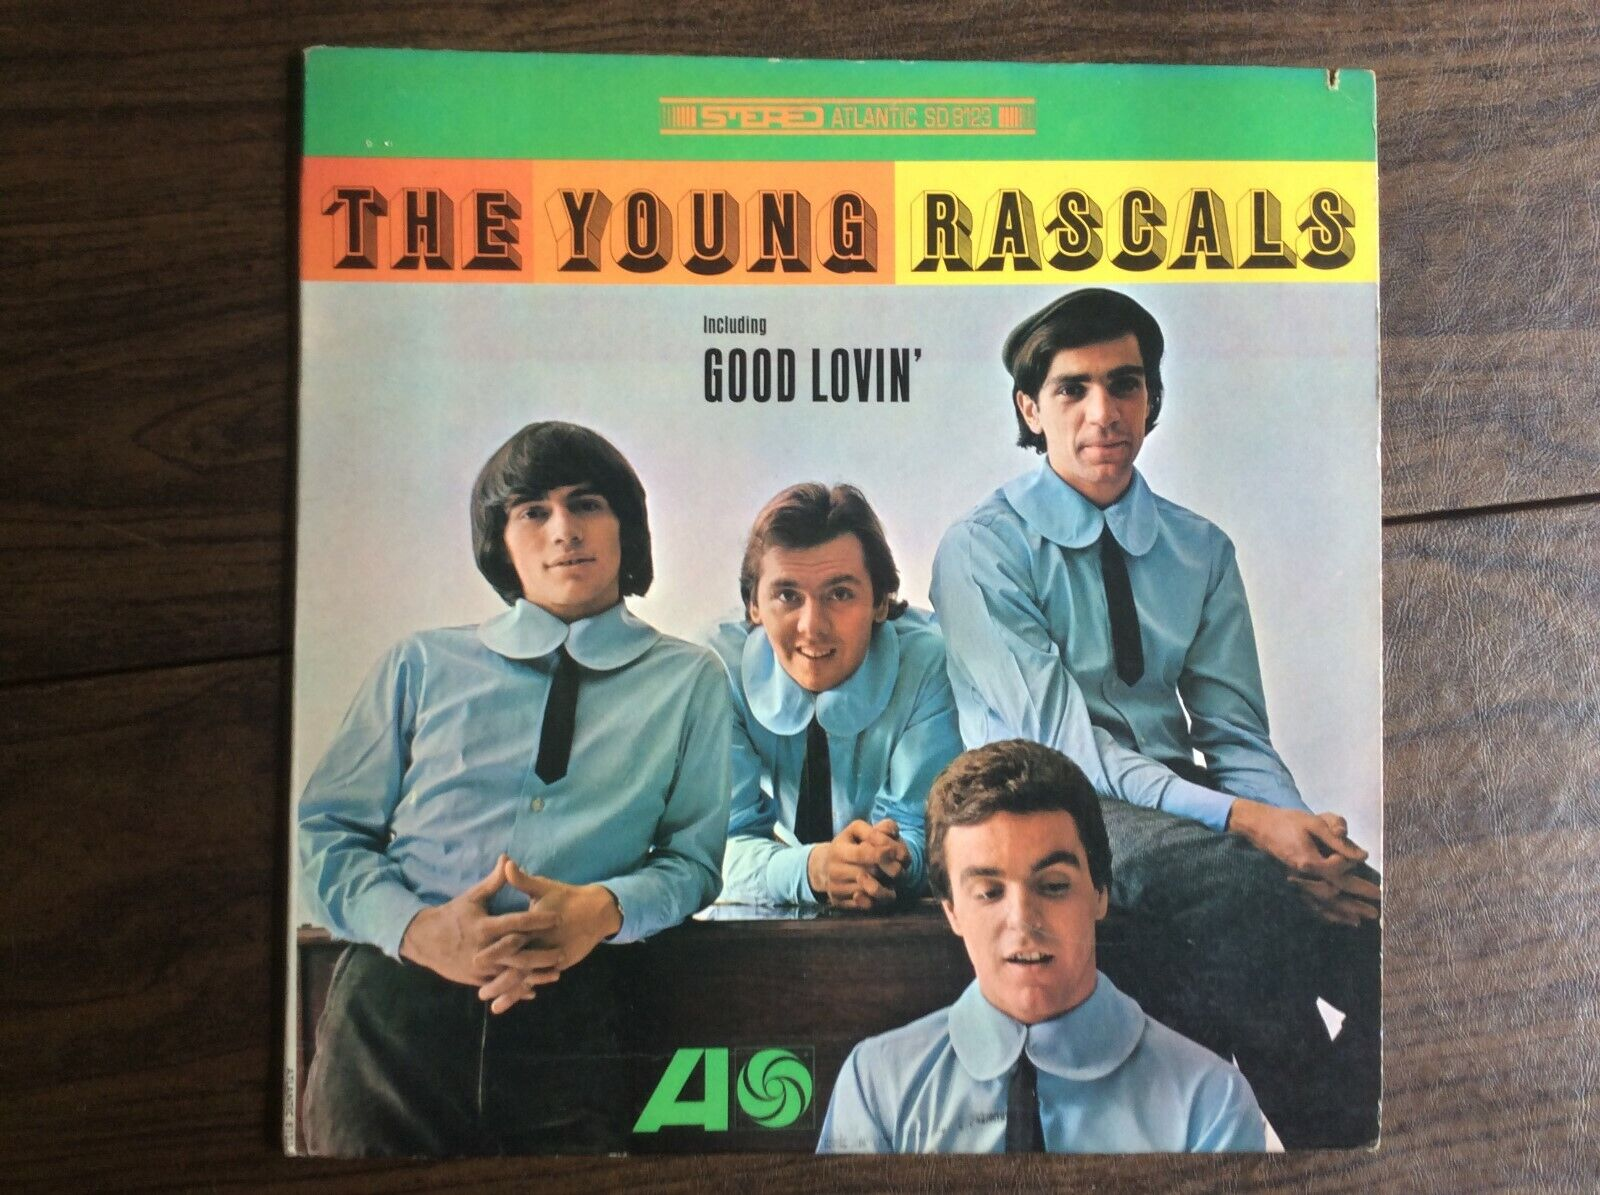 Young Rascals ~ Self Titled w/Good Lovin ~ Atlantic SD 8123 ~ EX Stereo LP